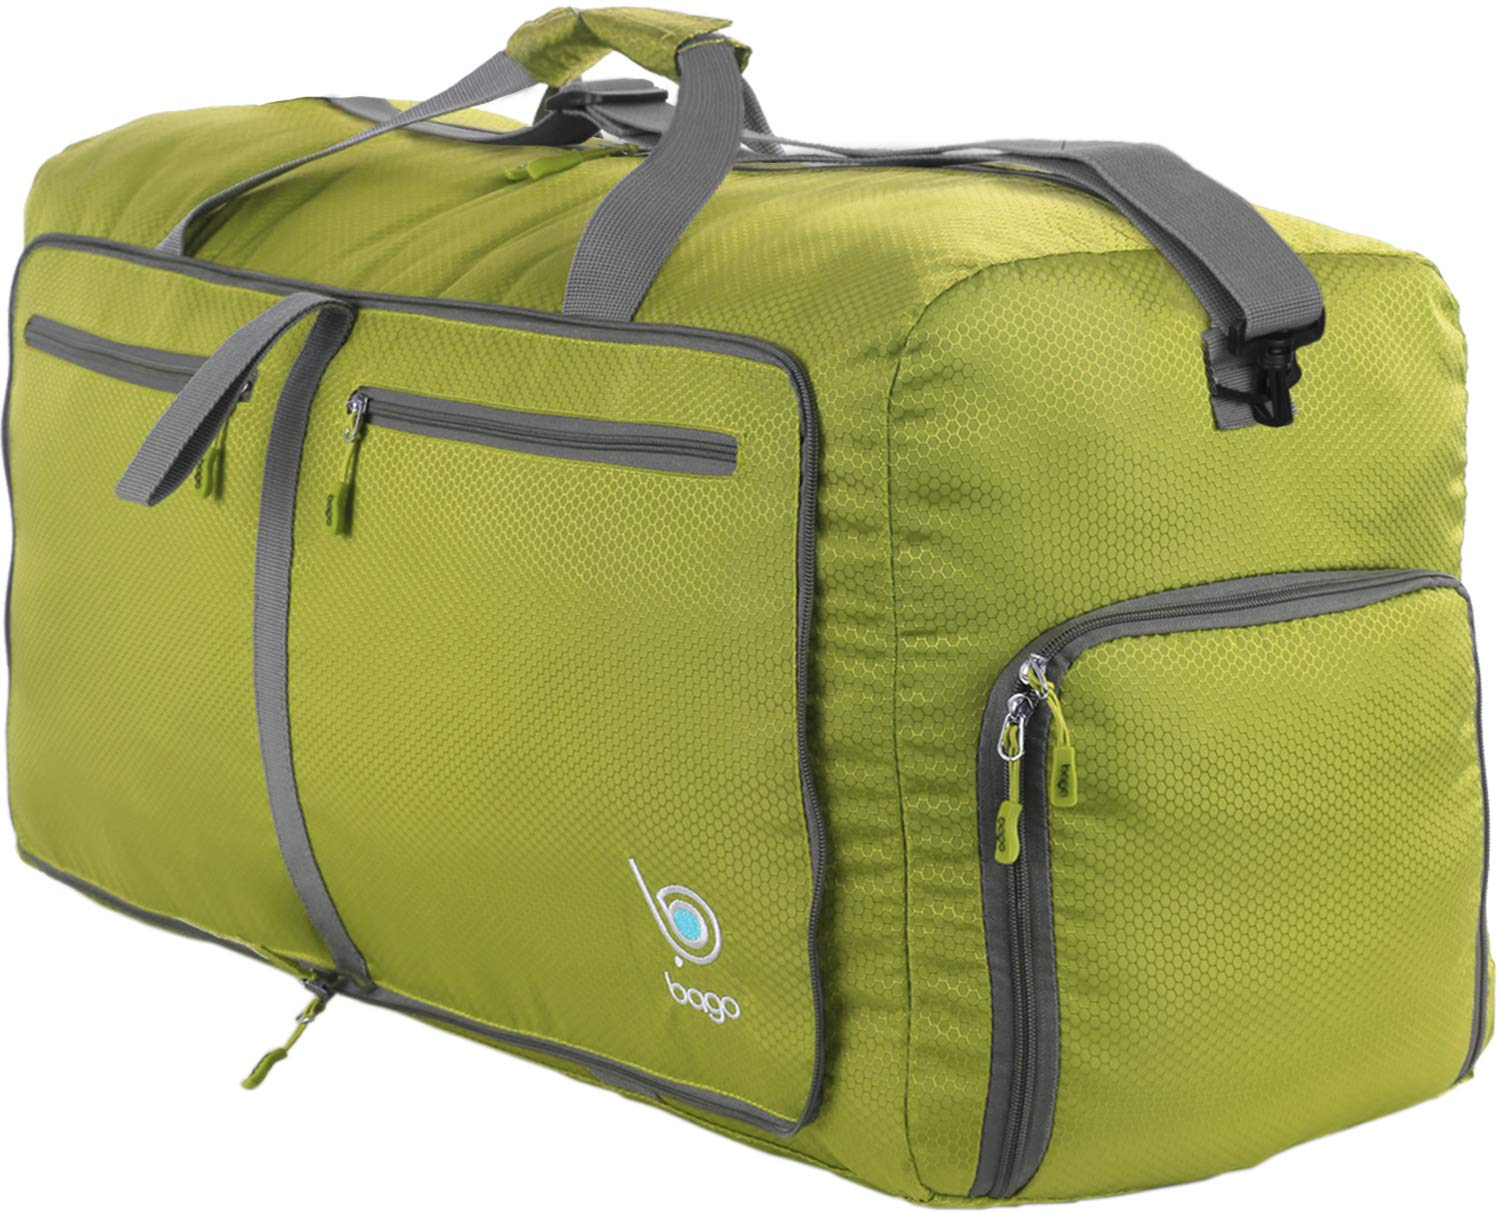 Bago 80L Duffle Bag for Women & Men - 27'' Travel Bag Large Foldable Duffel bag (Green)